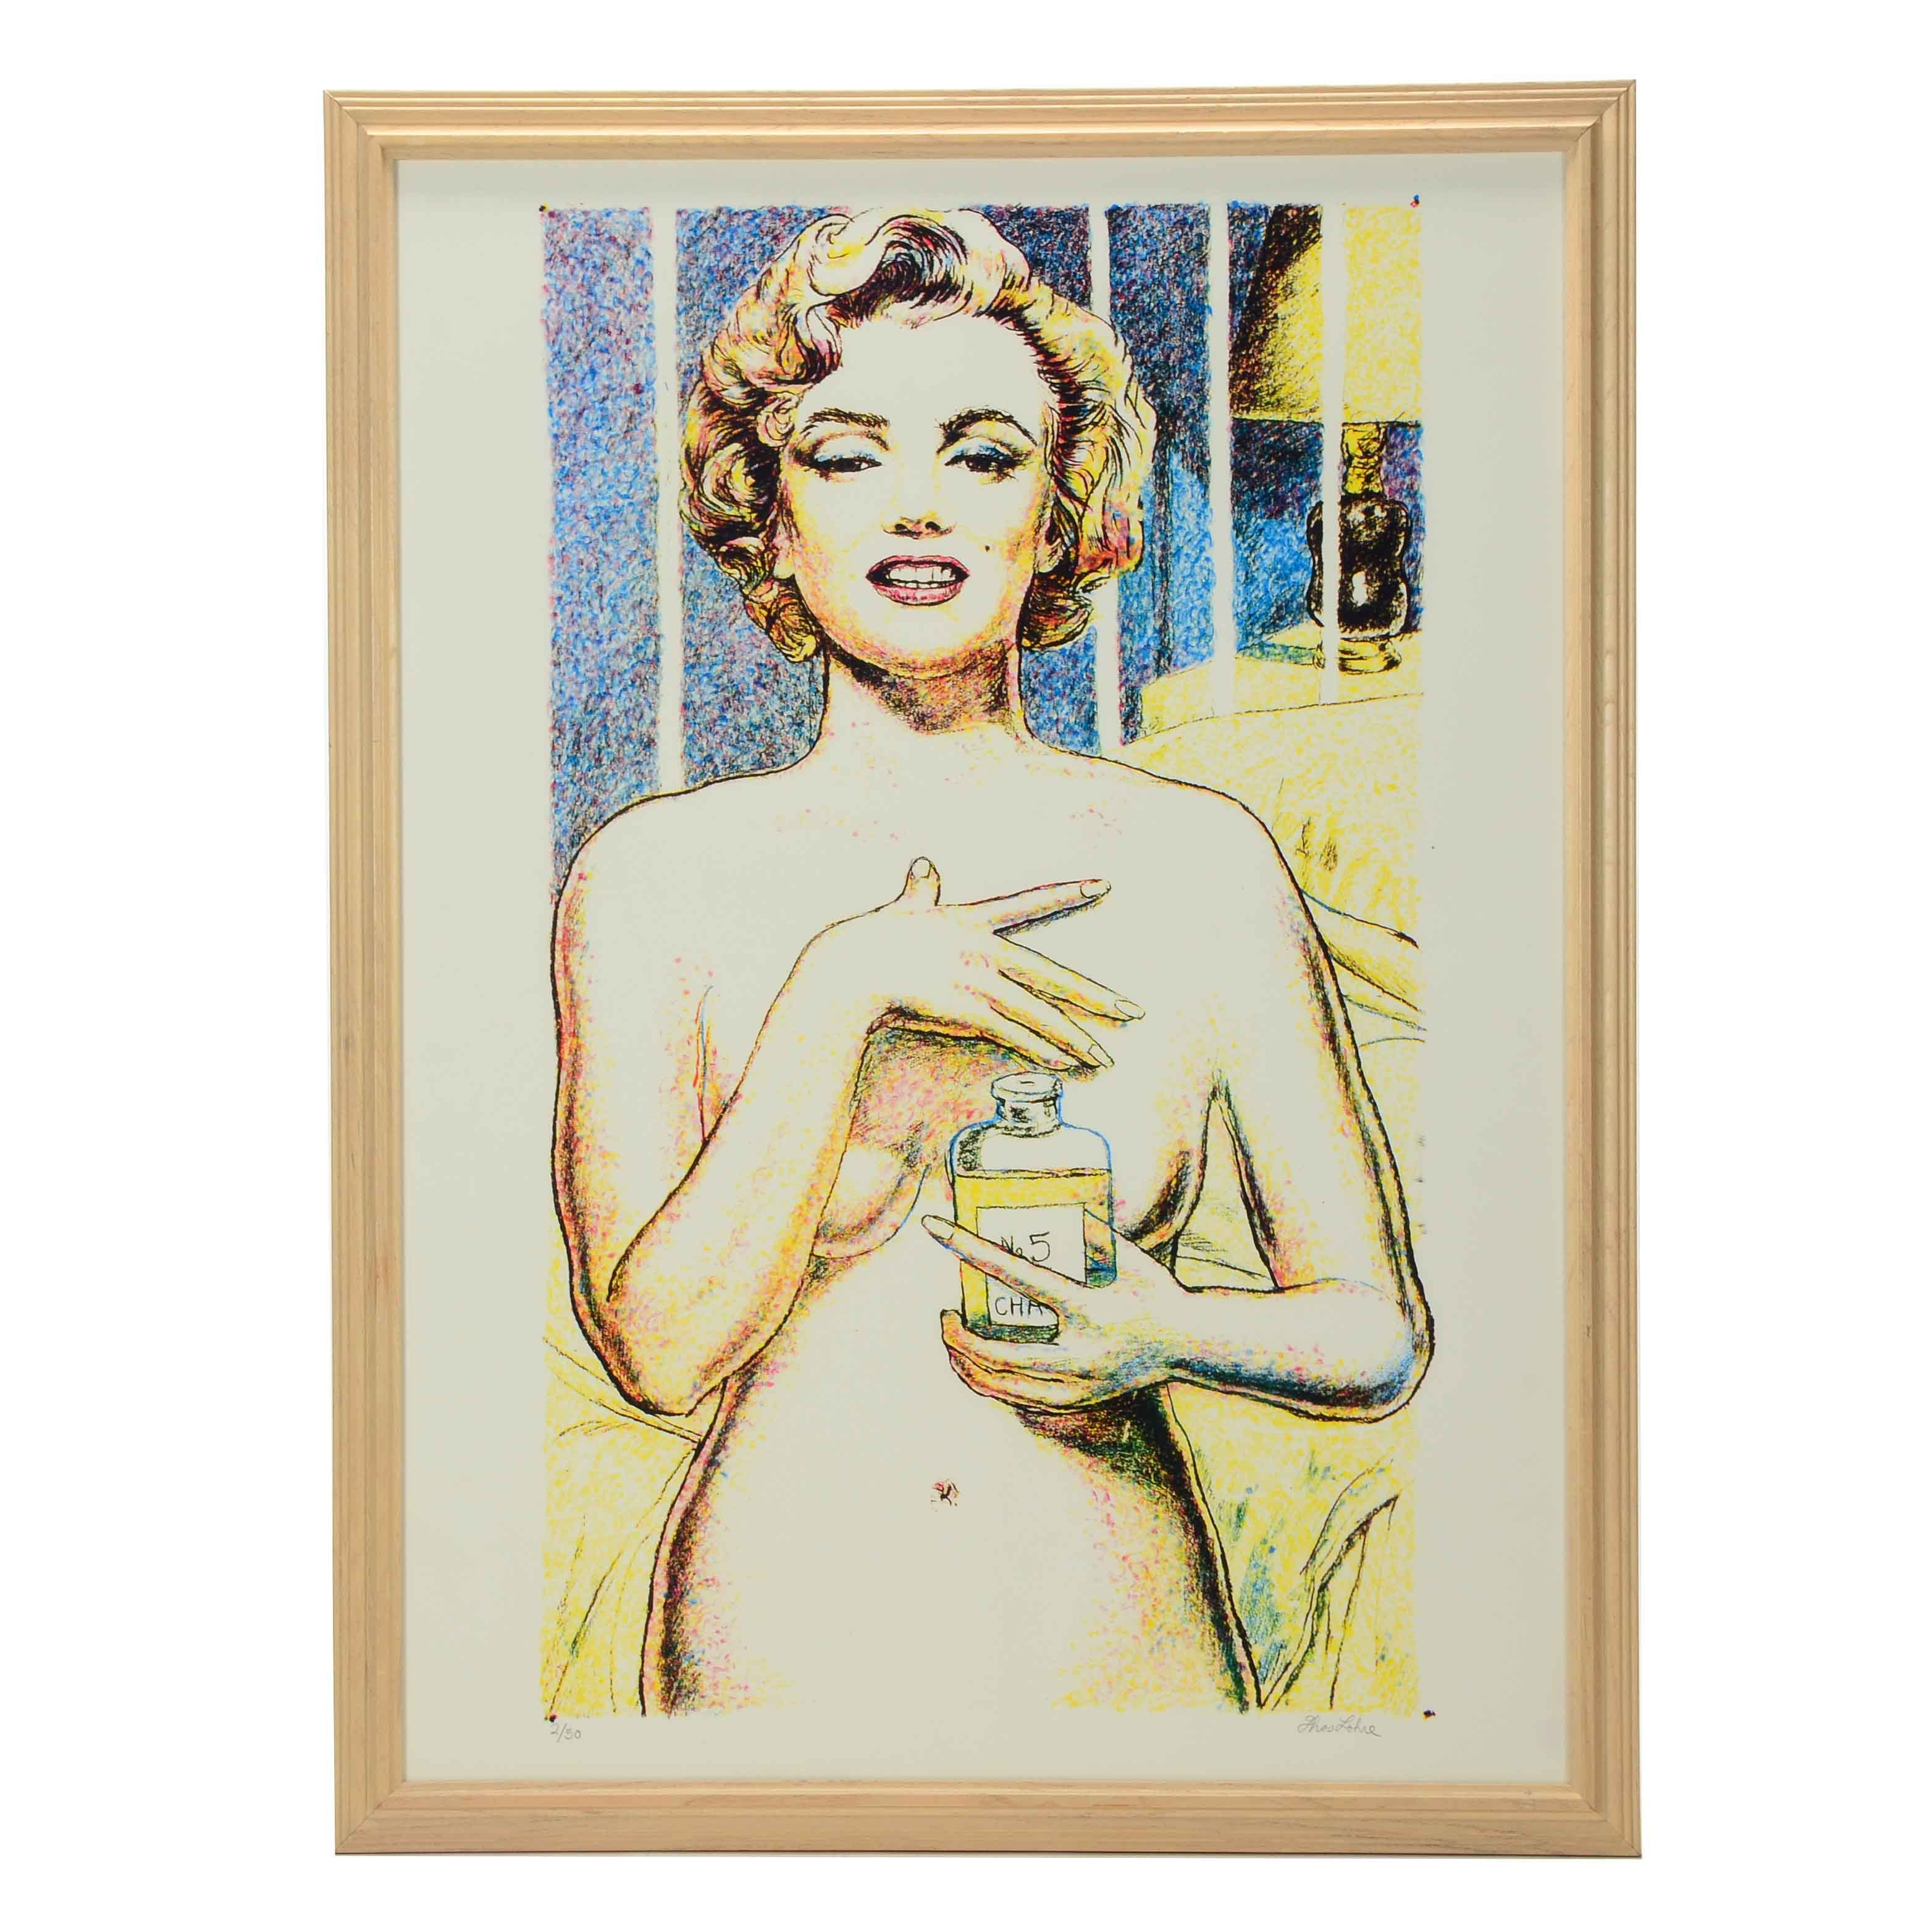 Tom Lohre Signed Limited Edition Serigraph of Marilyn Monroe